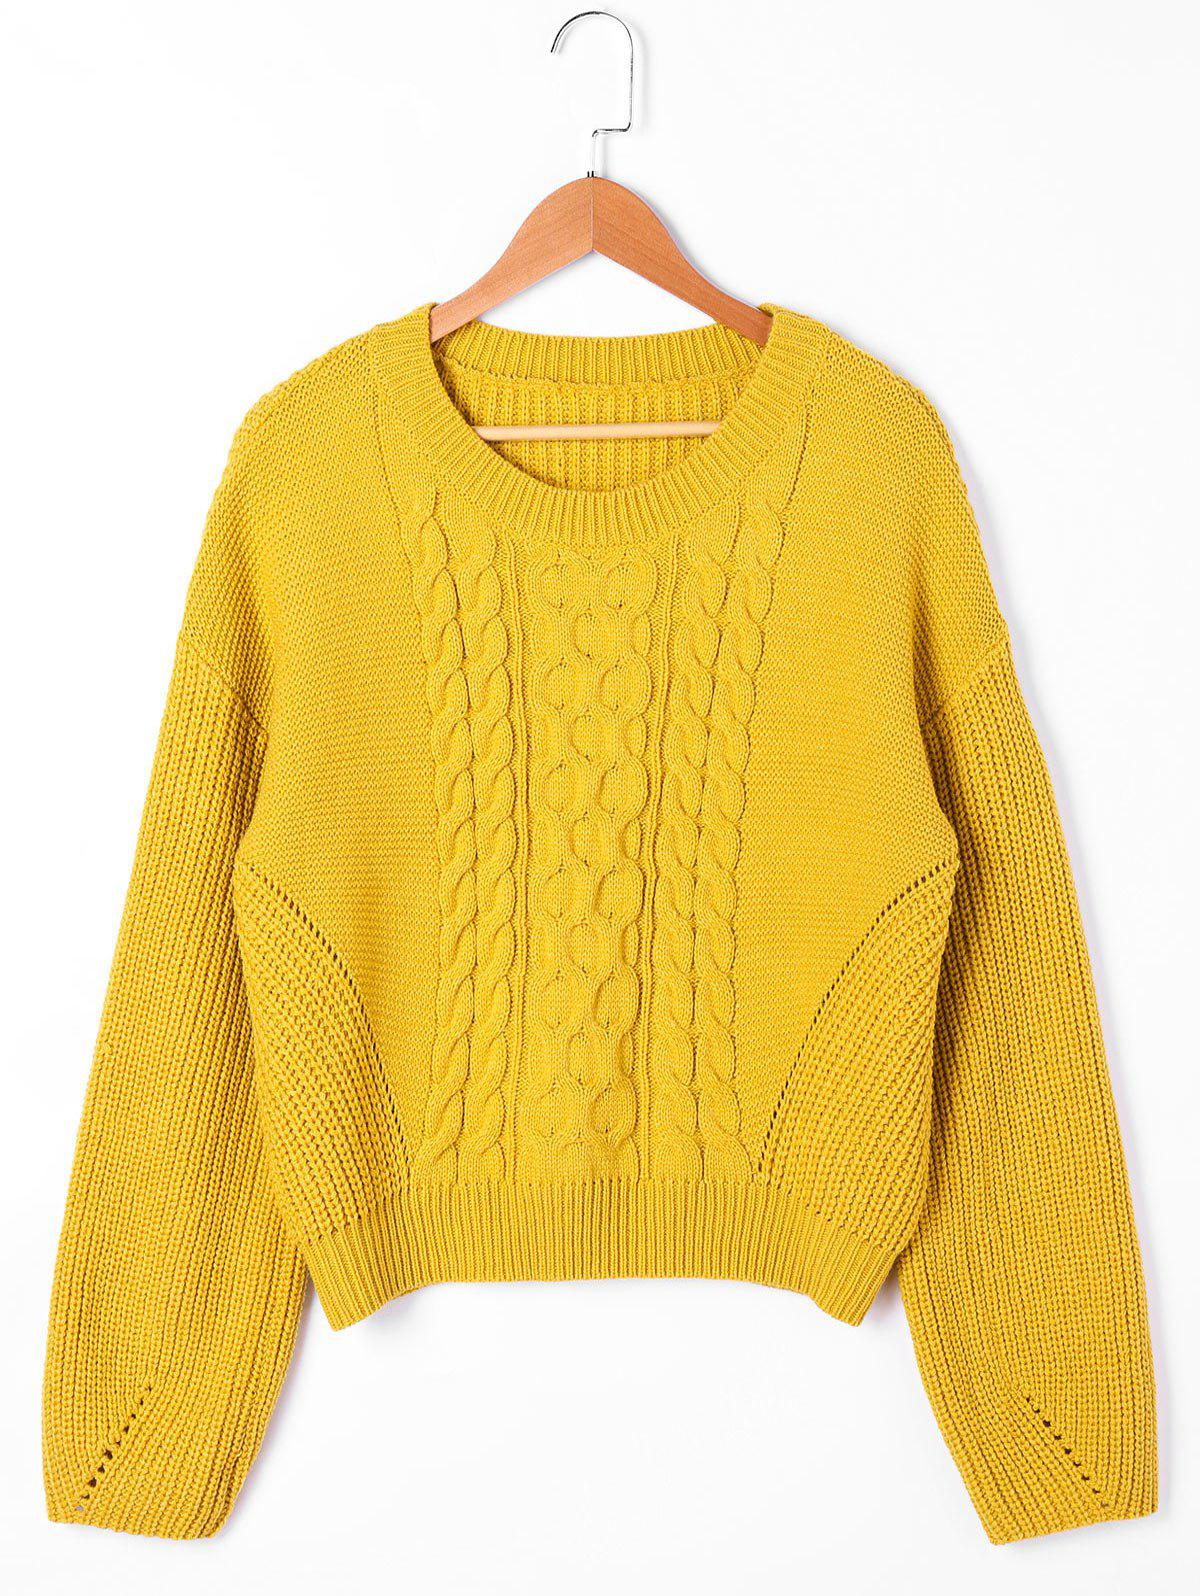 New Cable Knit Drop Shoulder Sweater